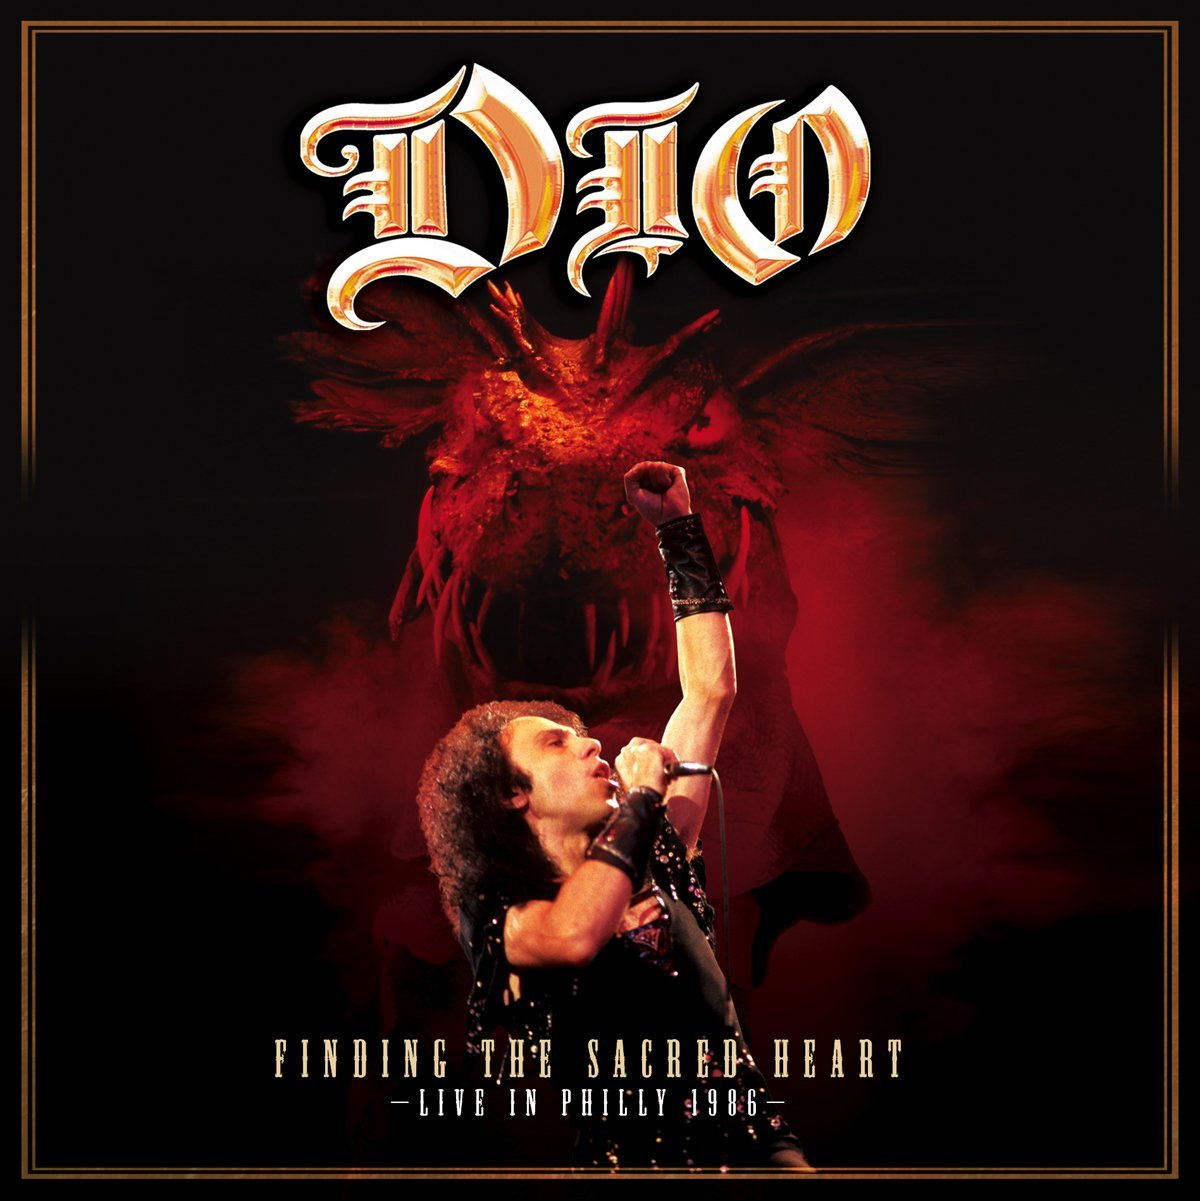 Capa do álbum Dio – Finding the Sacred Heart: Live in Philly 1986 (2013)